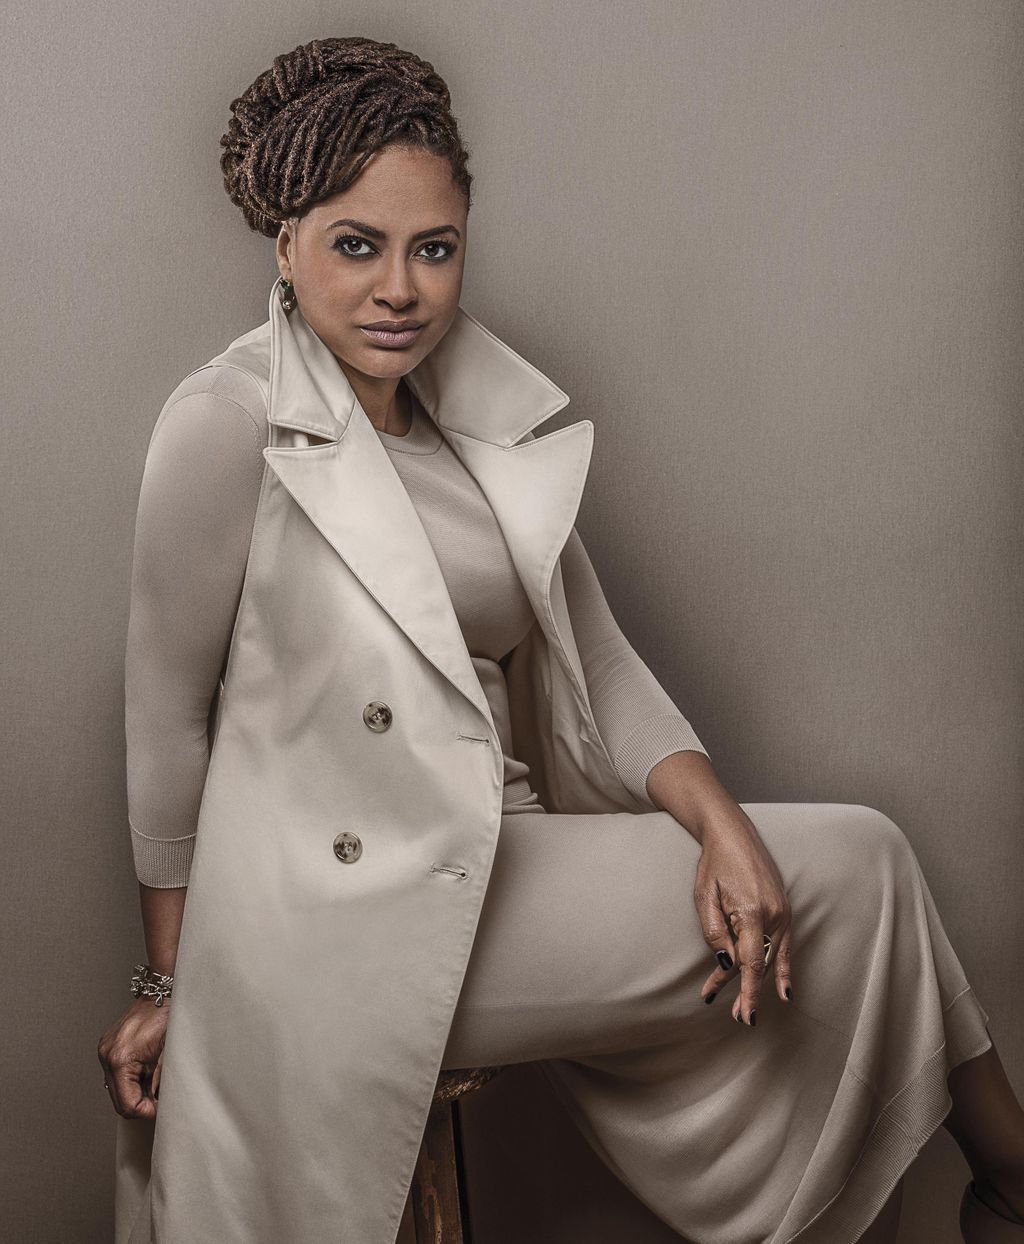 564864abda Ava DuVernay on Hollywood Racism and Optimism -- The Cut